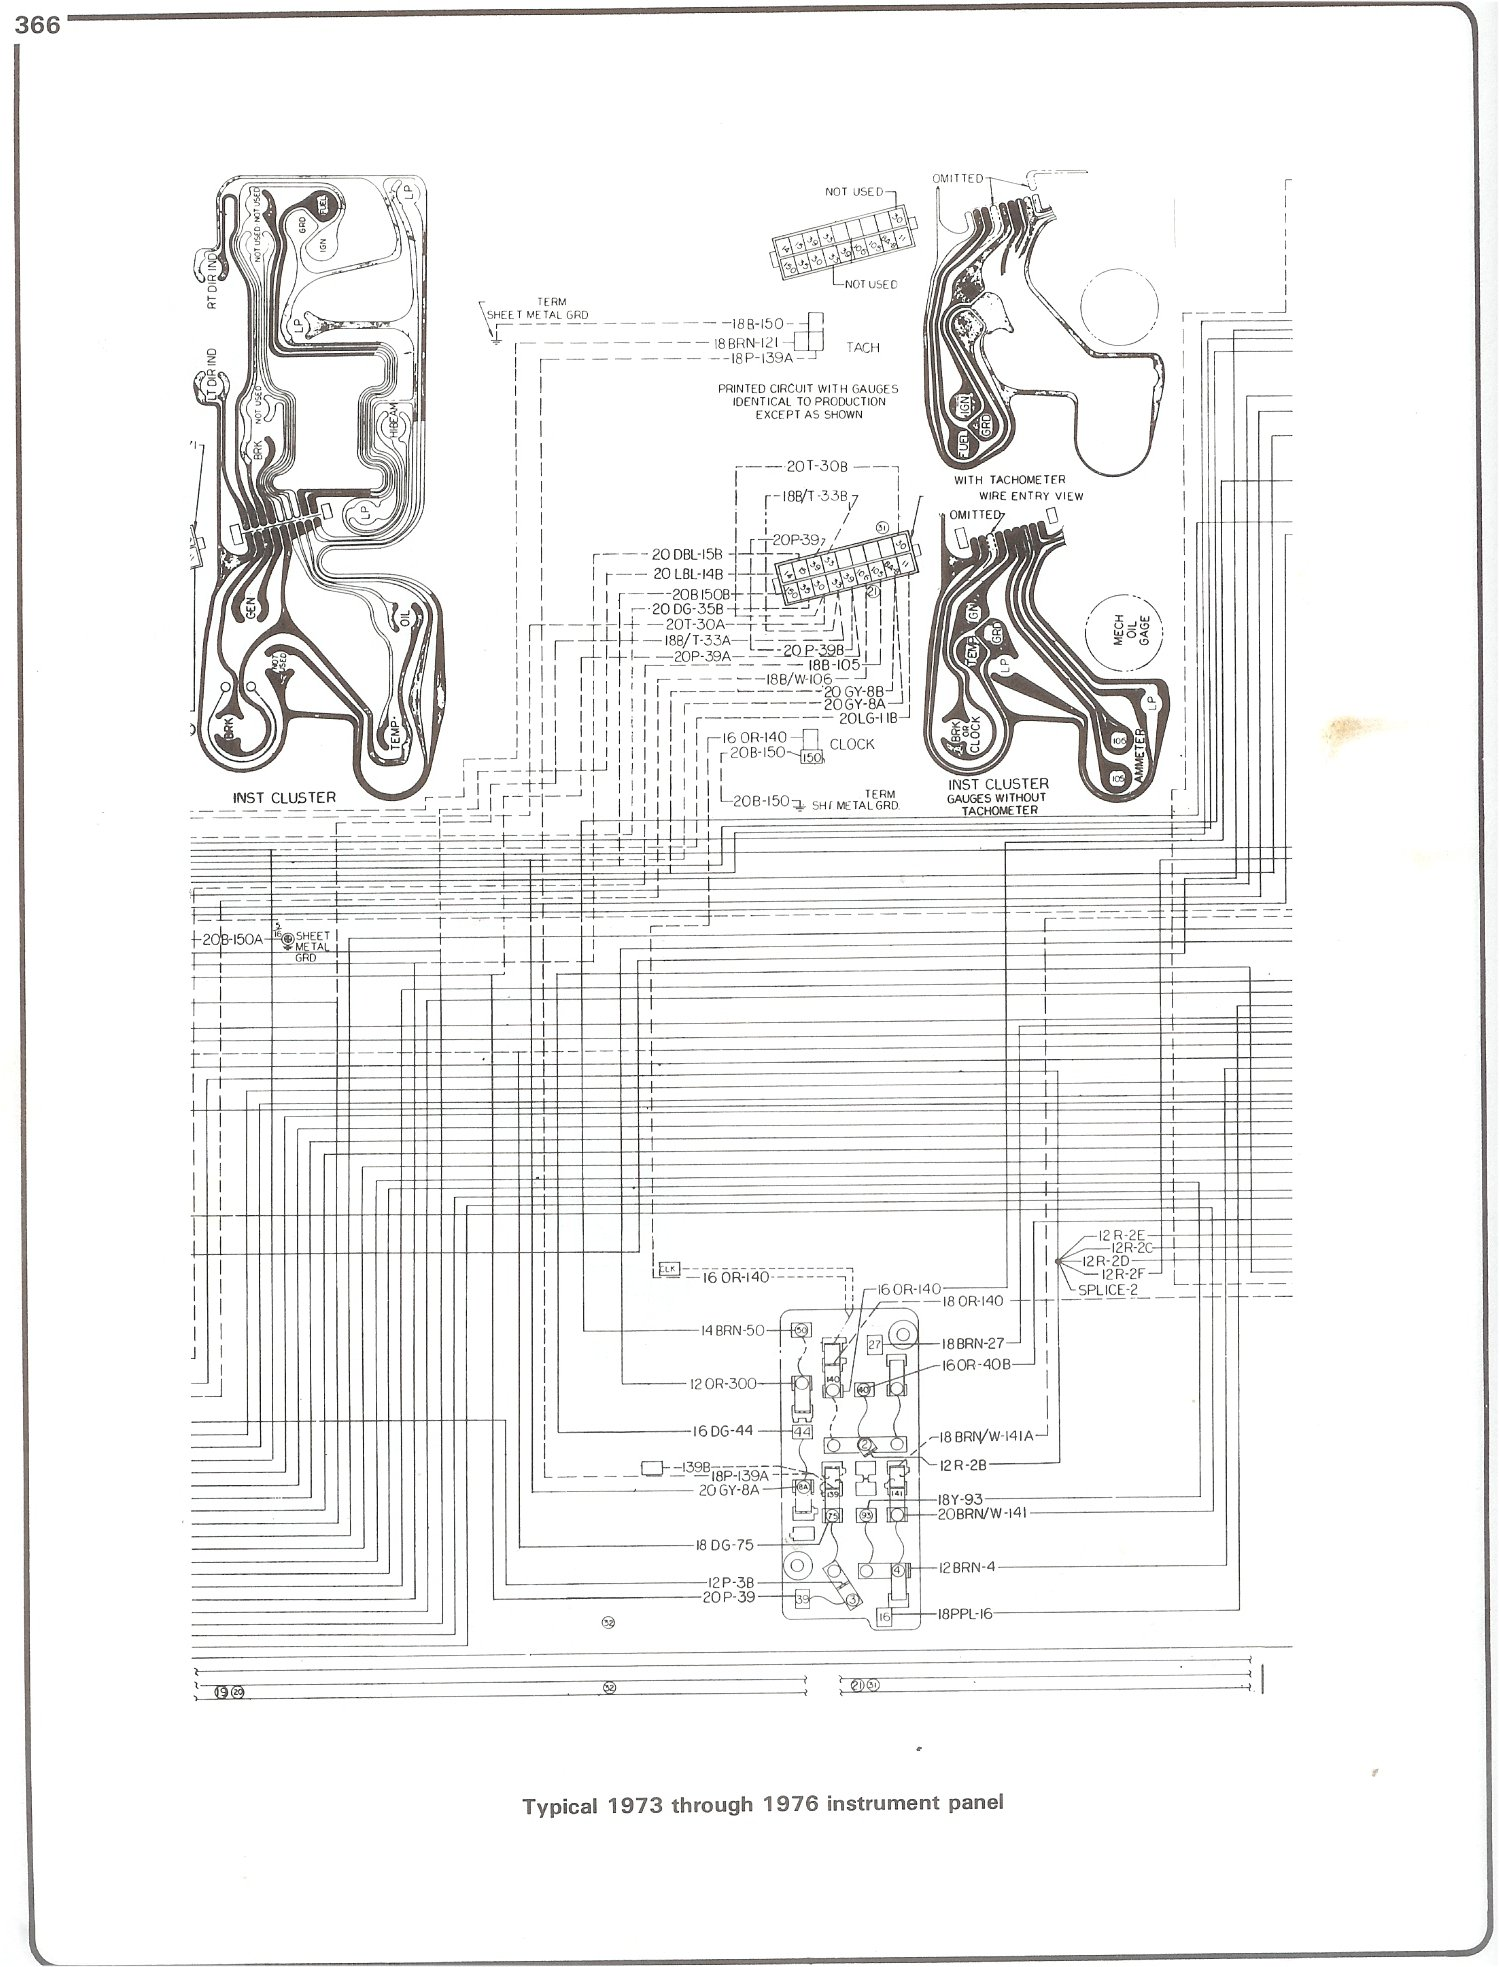 1978 chevrolet blazer wiring diagrams trusted schematics diagram rh  propeller sf com 1998 Chevy Truck Wiring Diagram 1988 Chevy Truck Wiring  Diagrams